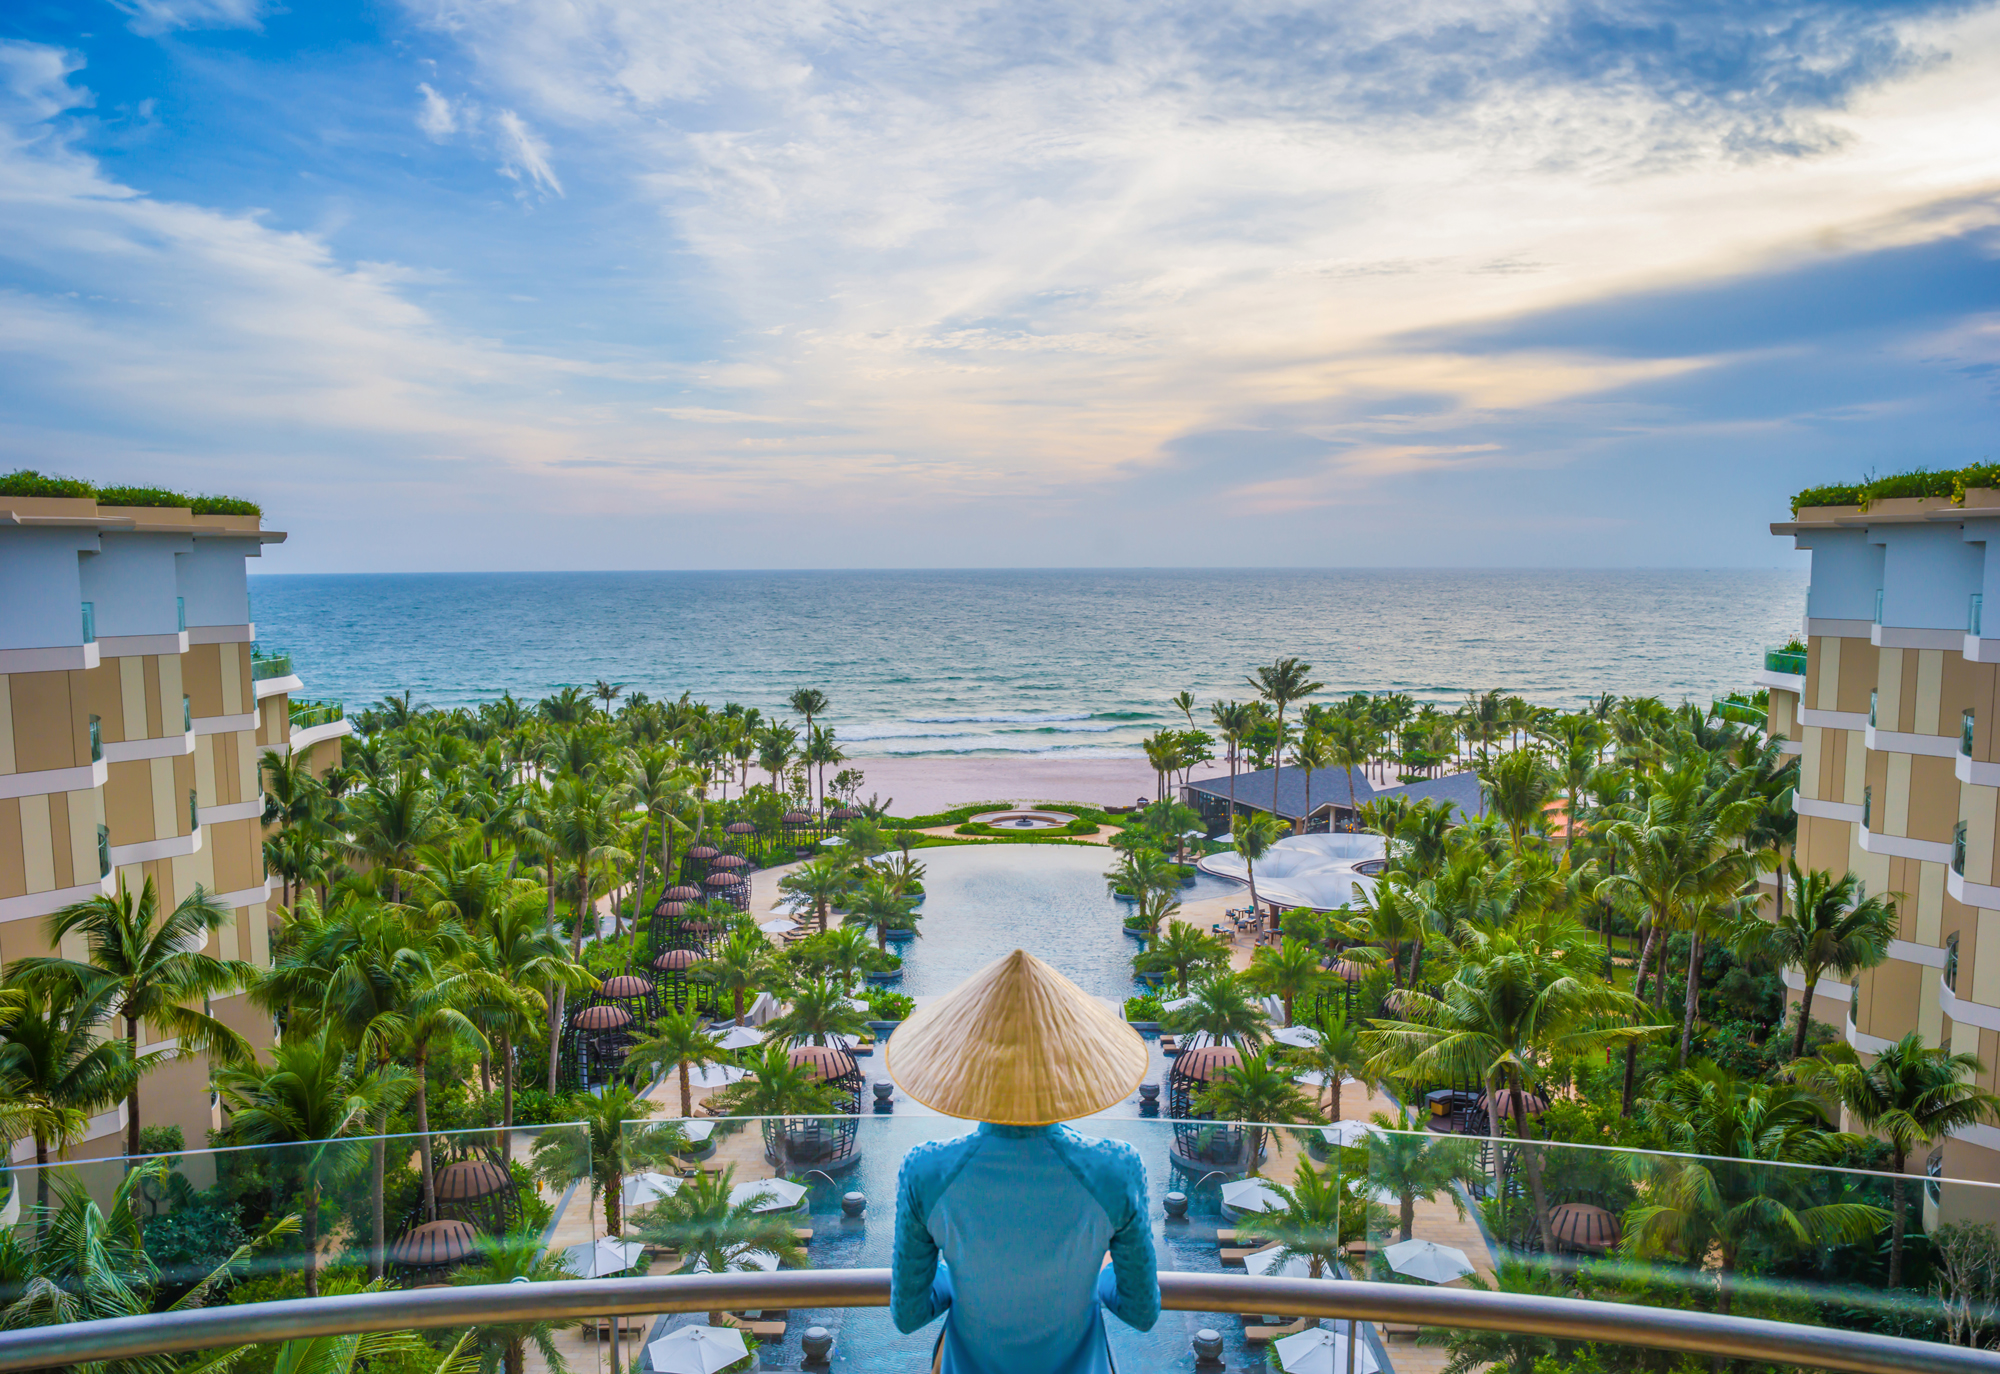 , Breaking Travel News investigates: InterContinental Phu Quoc Long Beach Resort, World News | forimmediaterelease.net